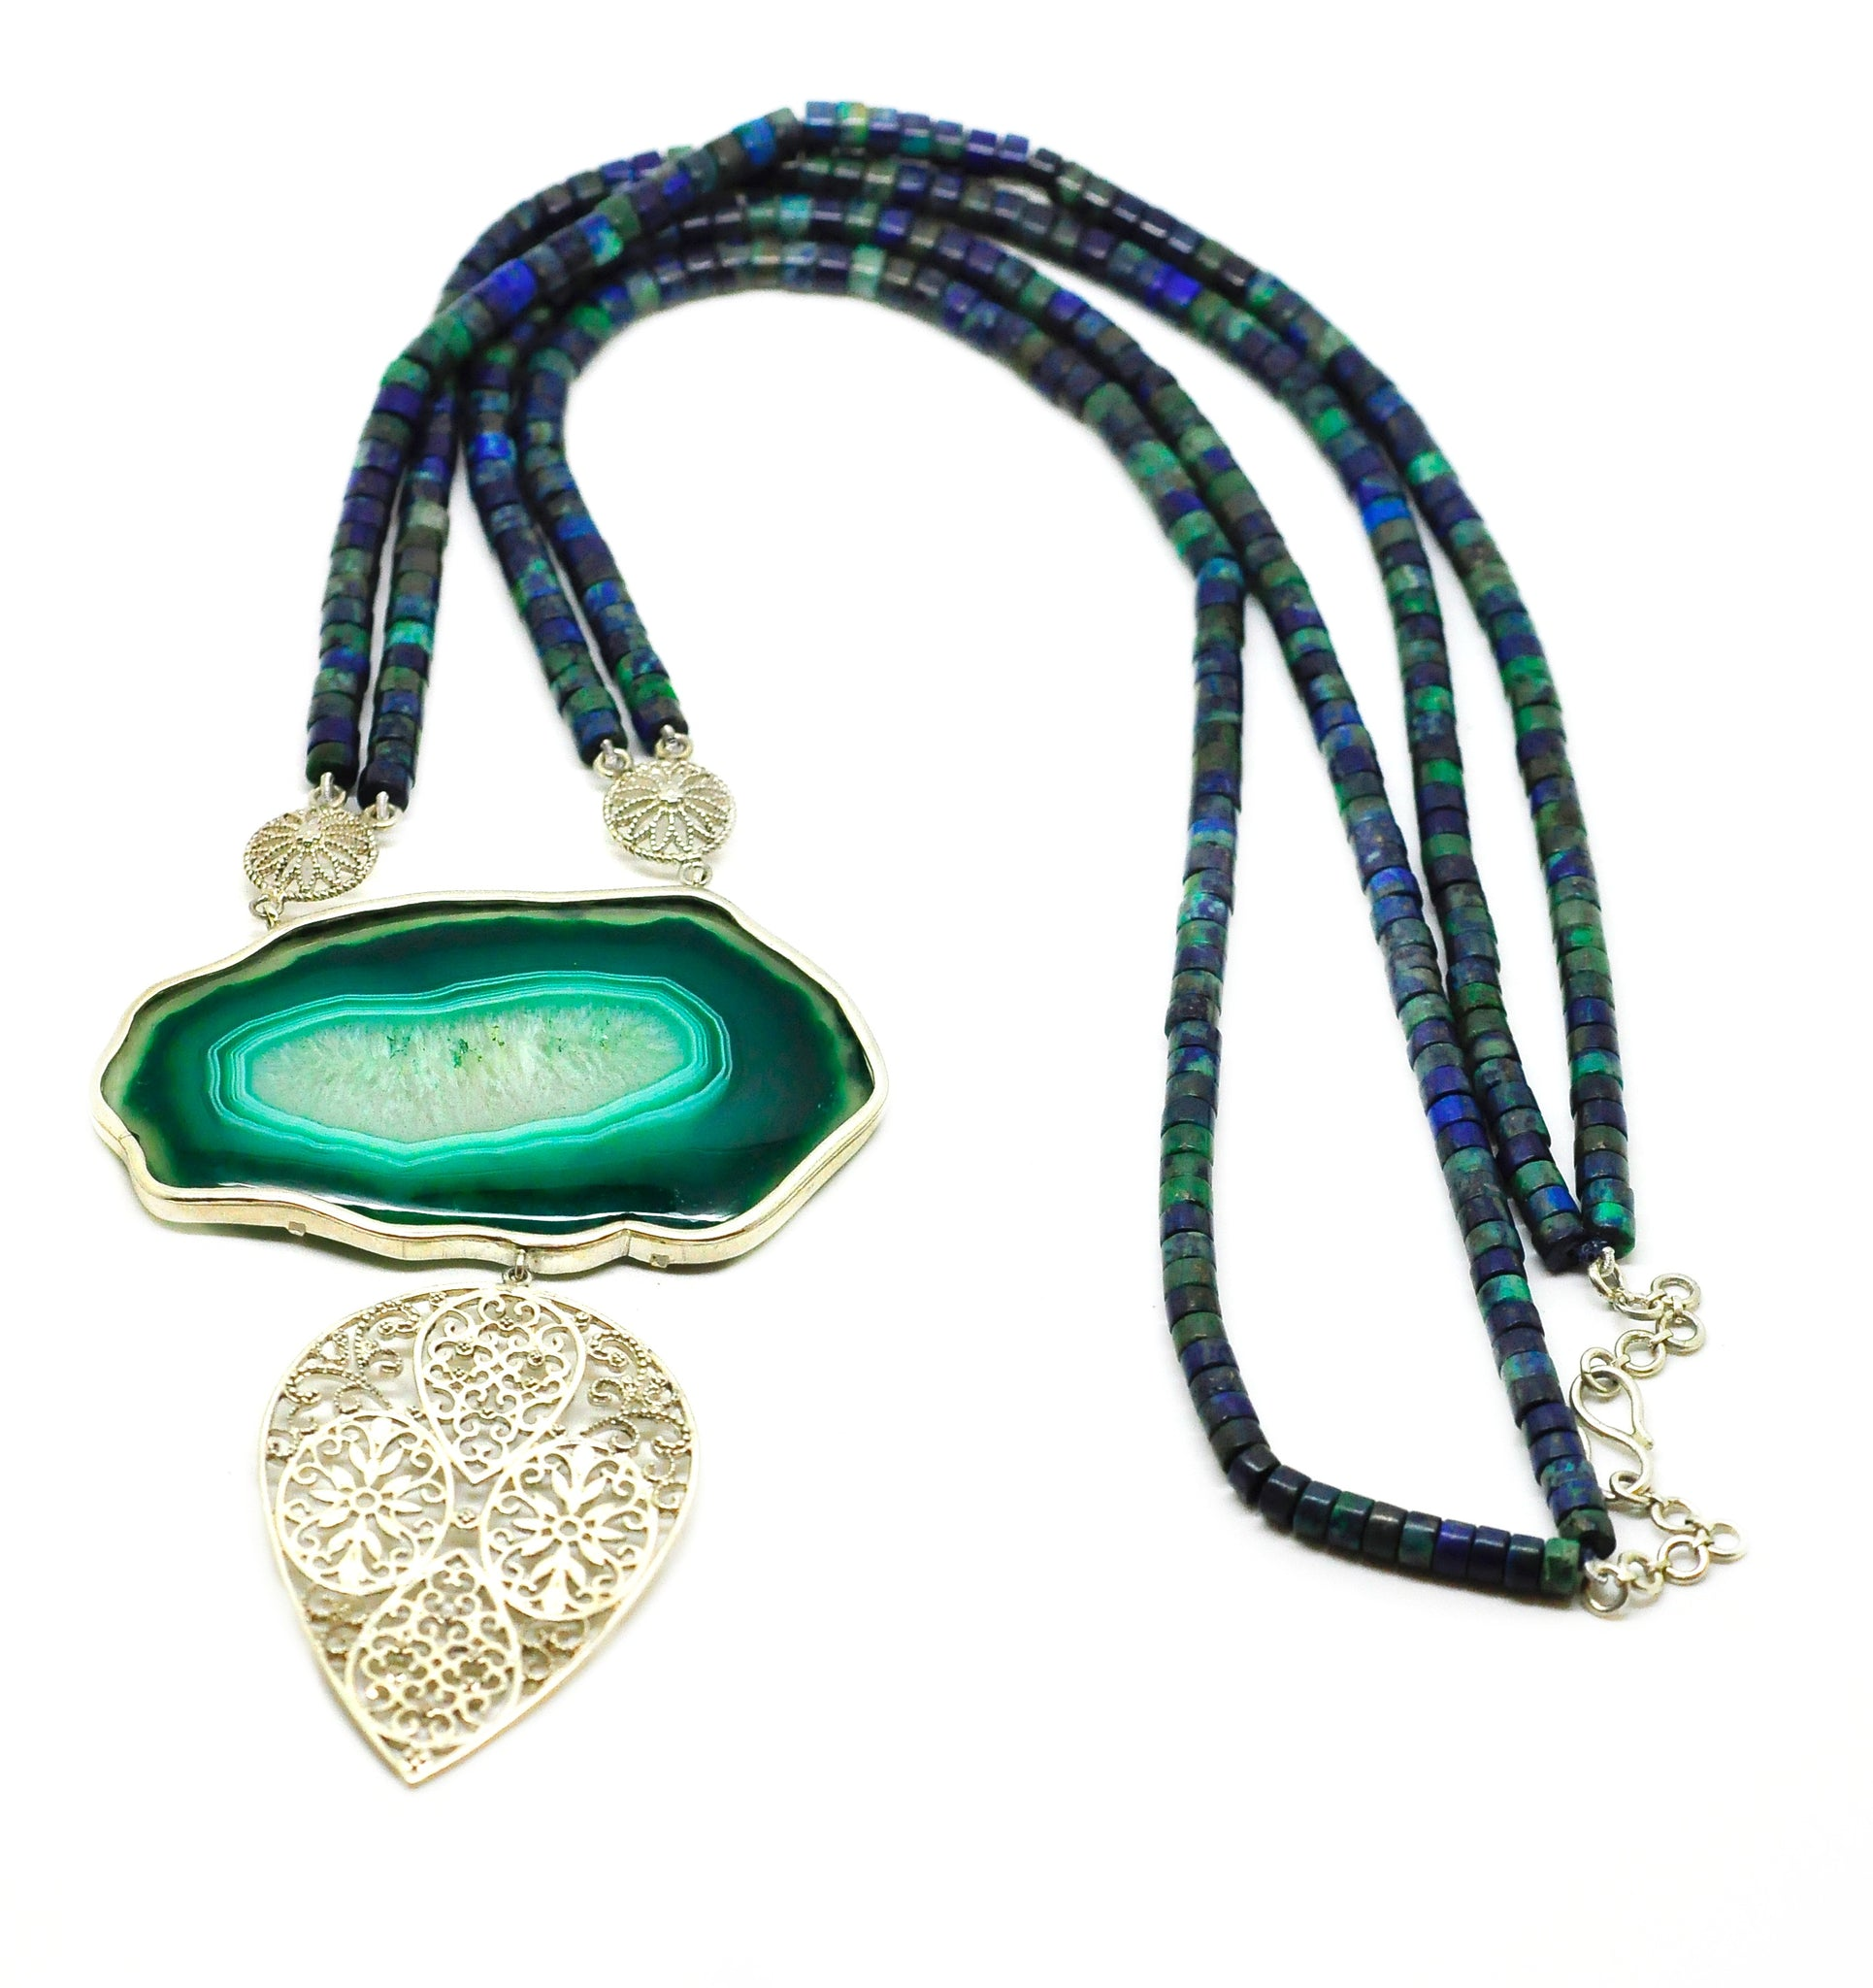 20 in 2020 - Agate Druzy necklace with Lapis chrysocolla